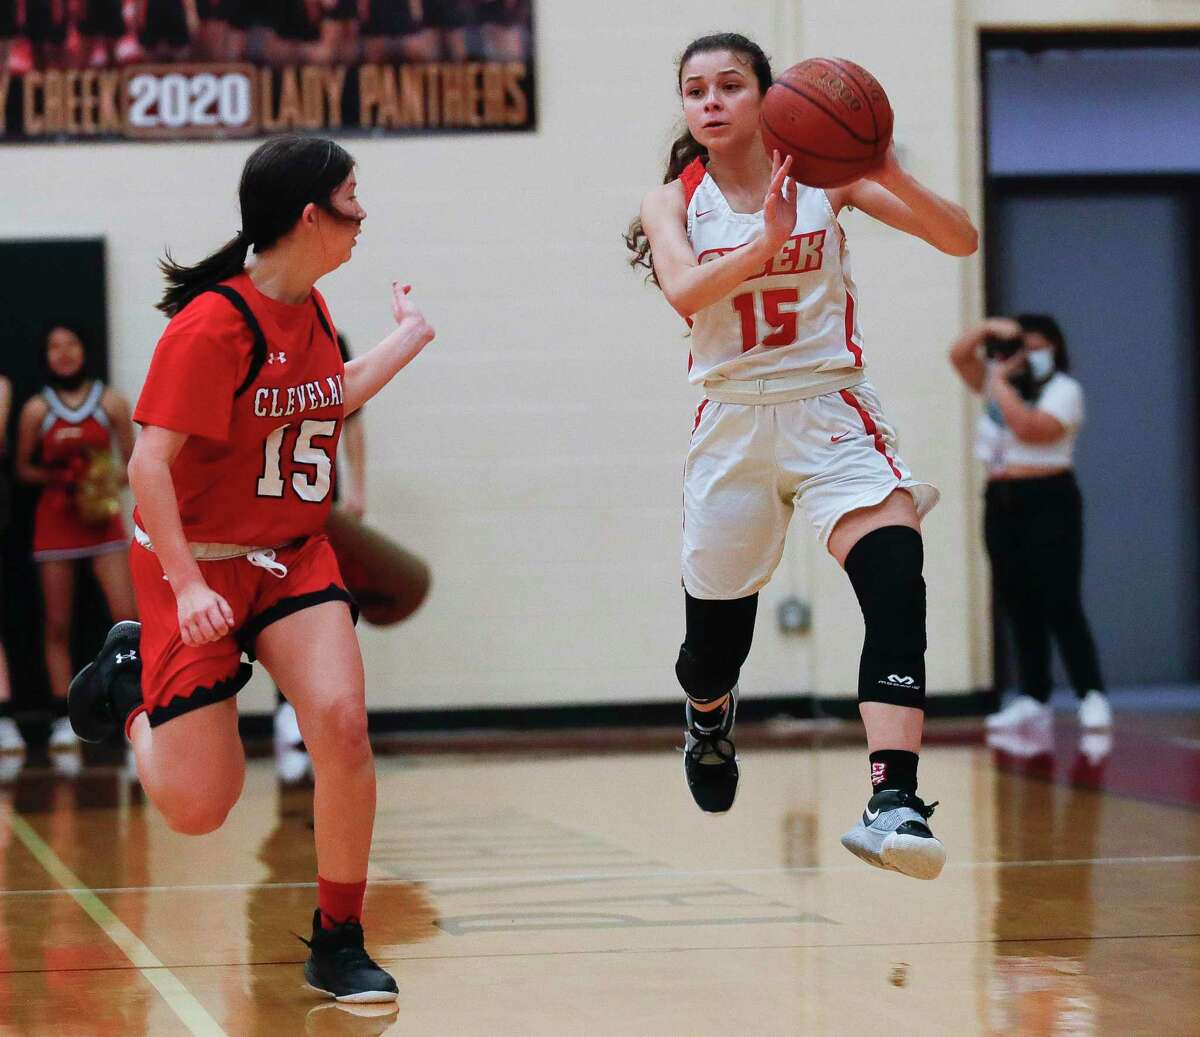 Caney Creek's Brooklynn Beaza (15) makes a pass down court as Cleveland's Angeline Garland (15) defends during the first quarter of a District 20-5A high school basketball game at Caney Creek High School, Wednesday, Jan. 27, 2021, in Grangerland.